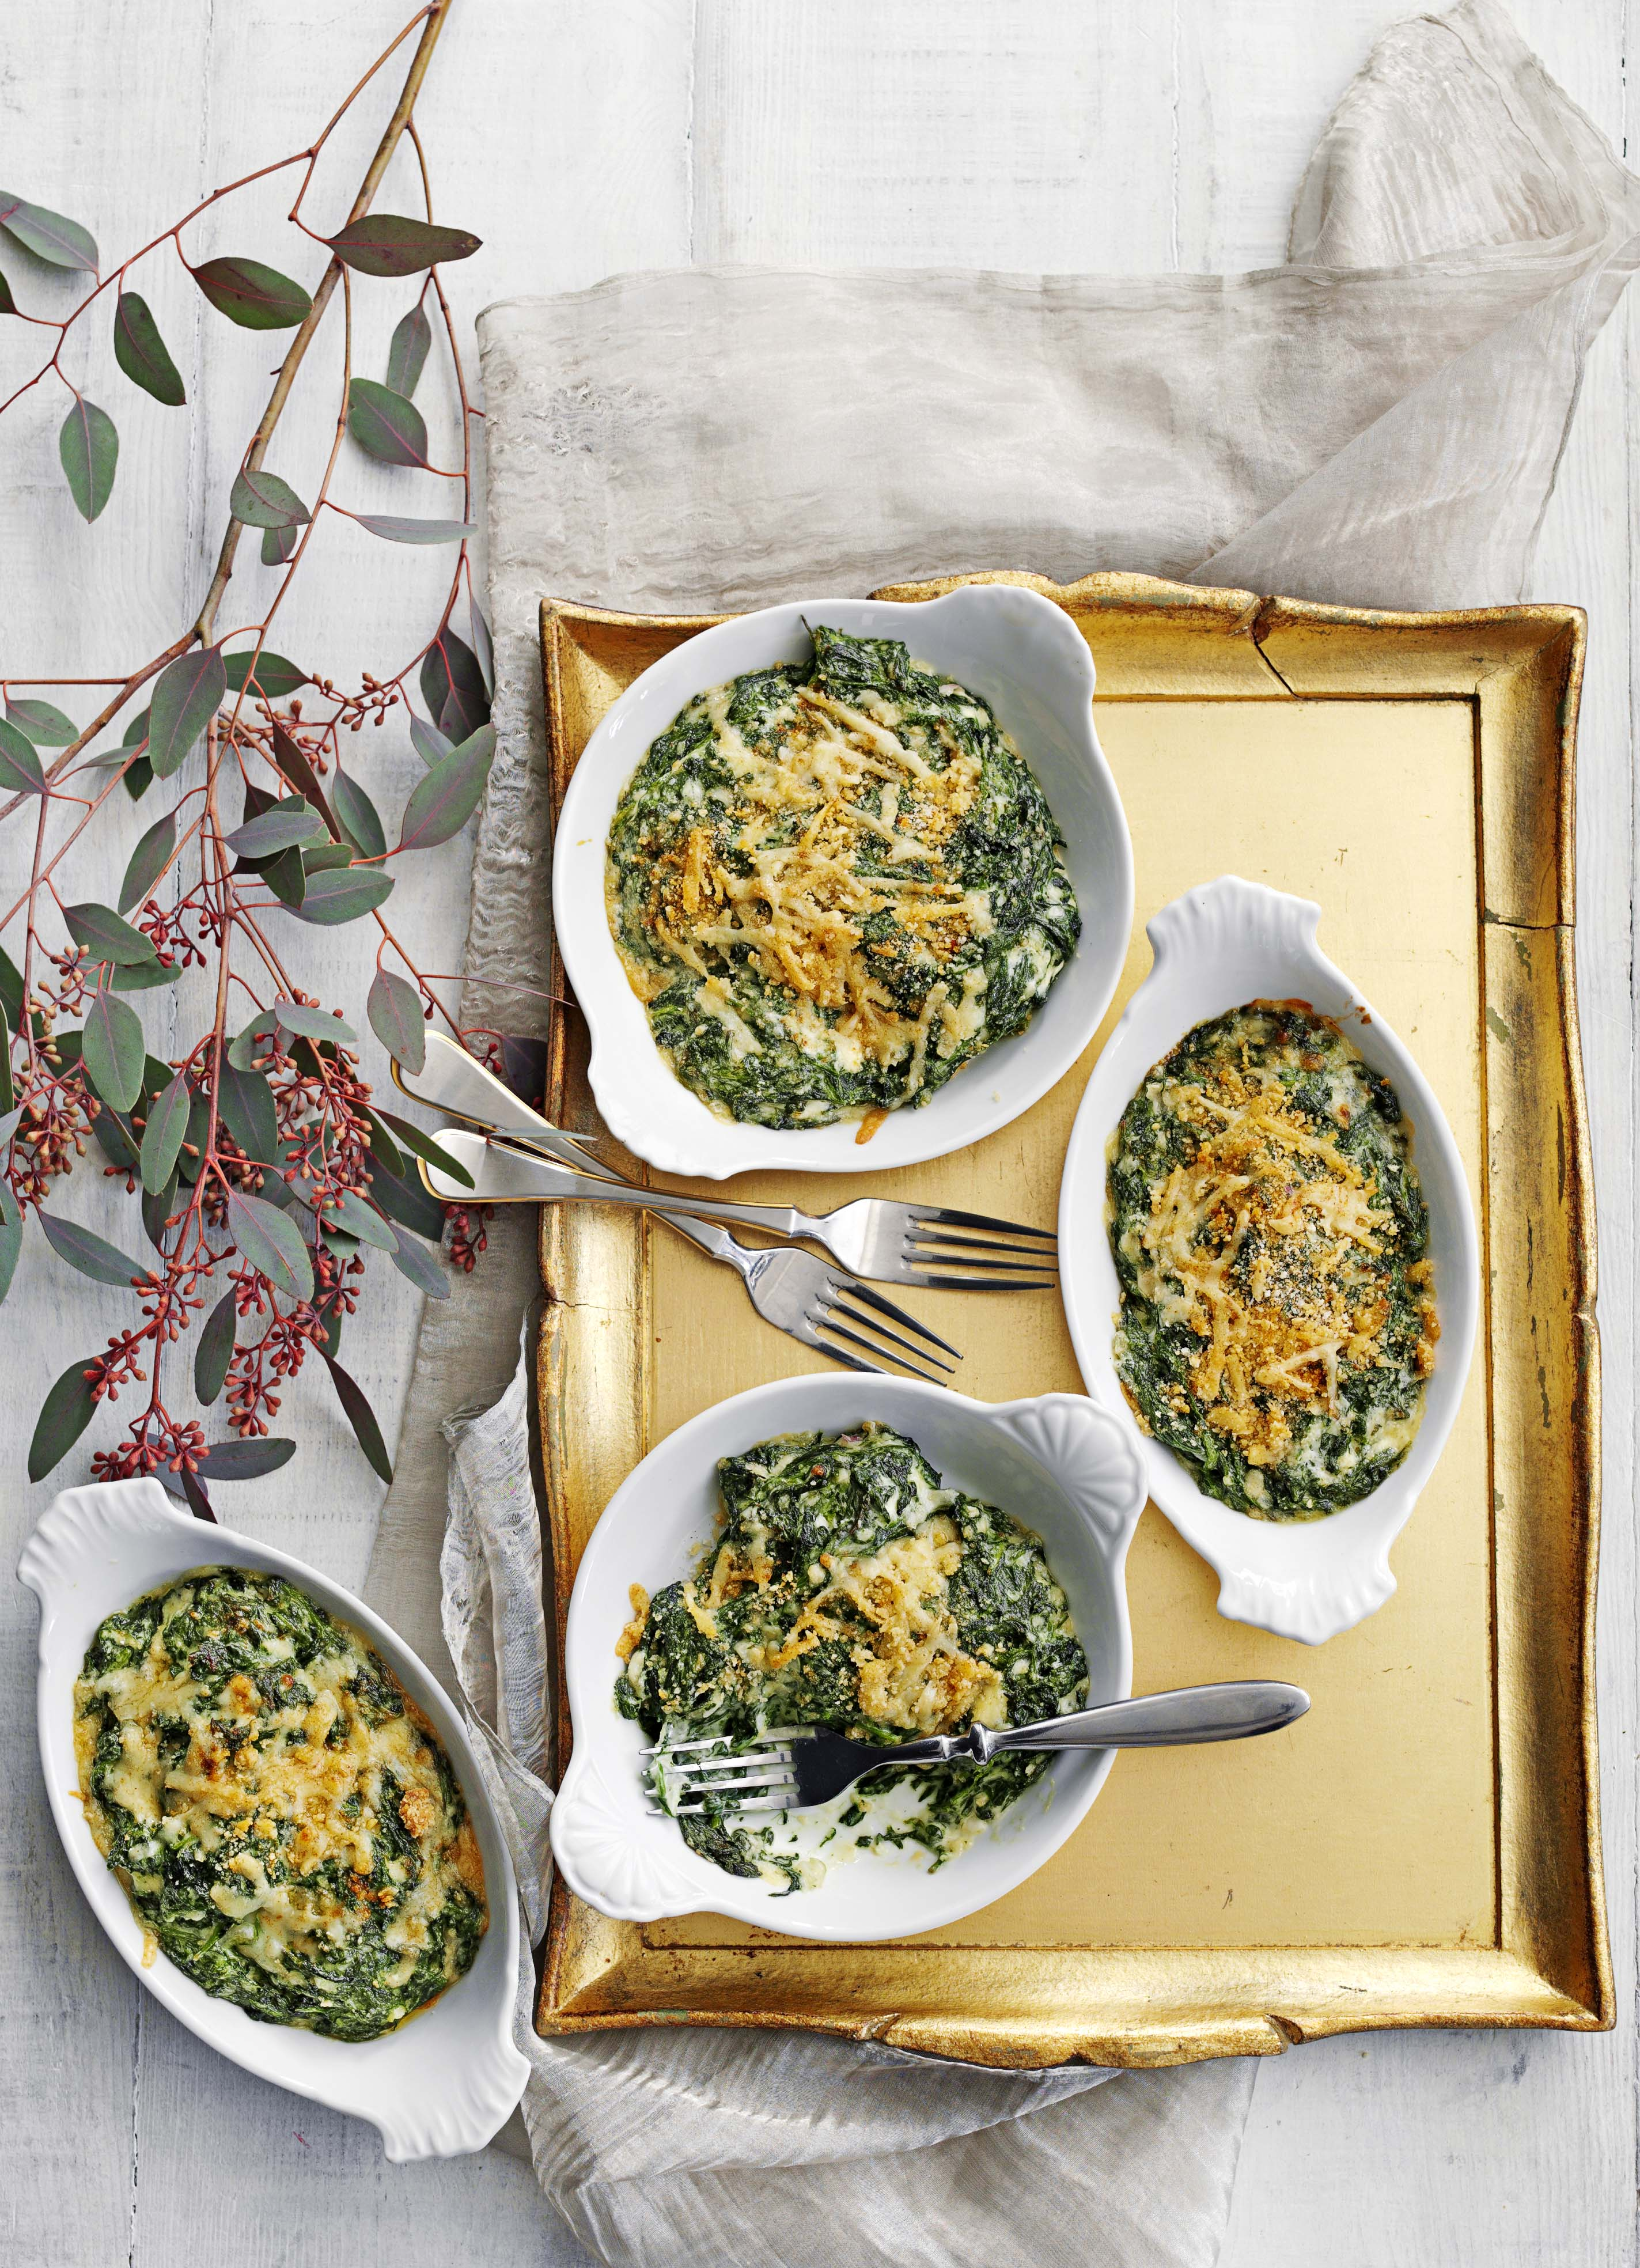 Steakhouse-style spinach gratin